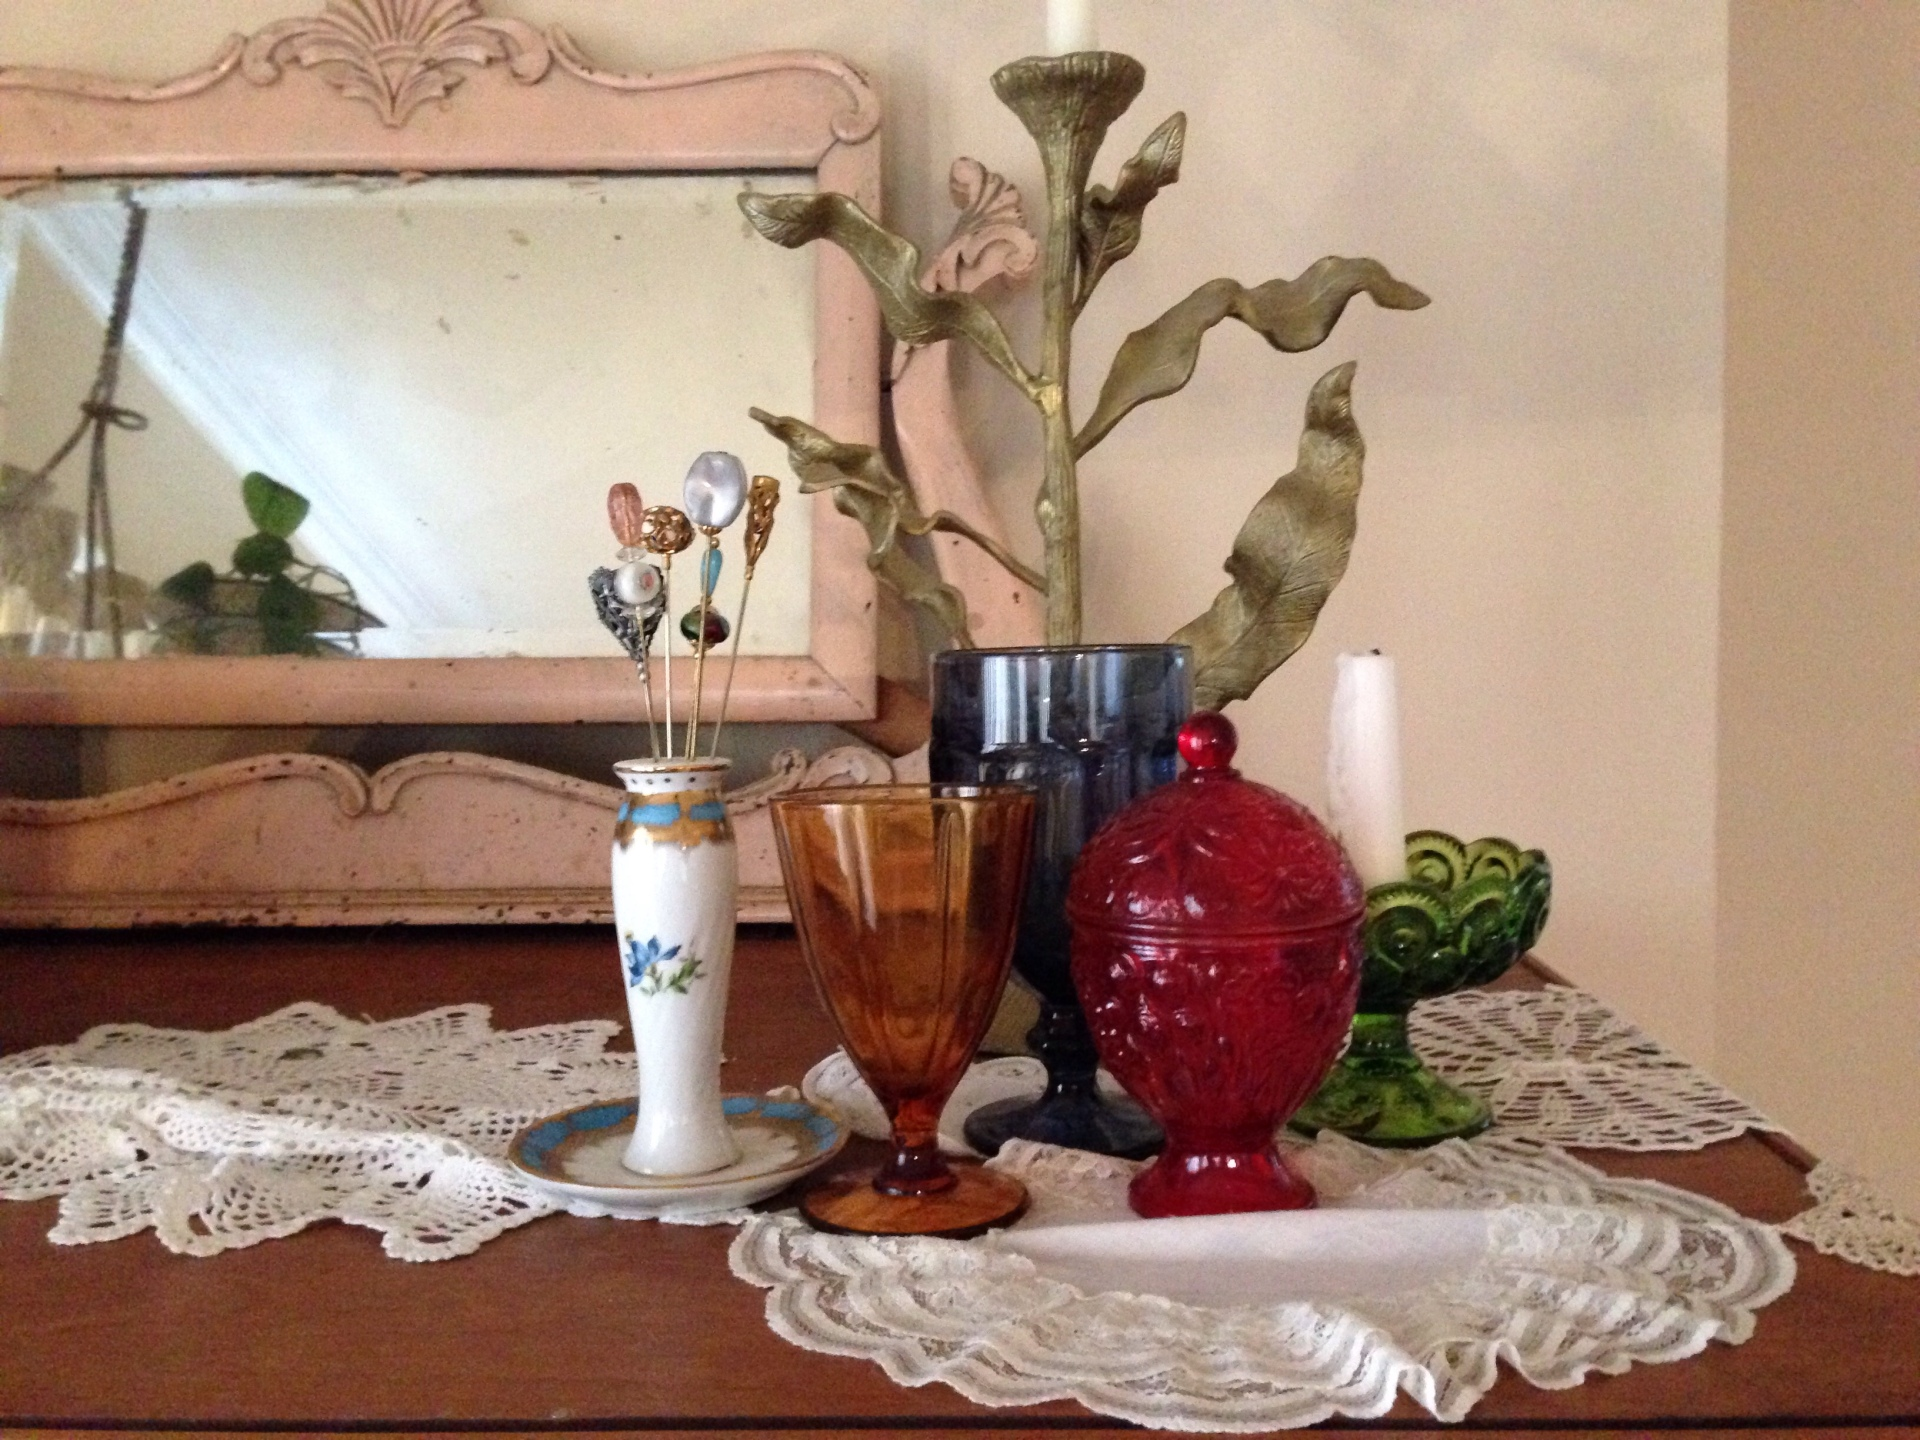 The thrifted jars that made up our centerpieces now decorate the top of an armoire in our dining room...